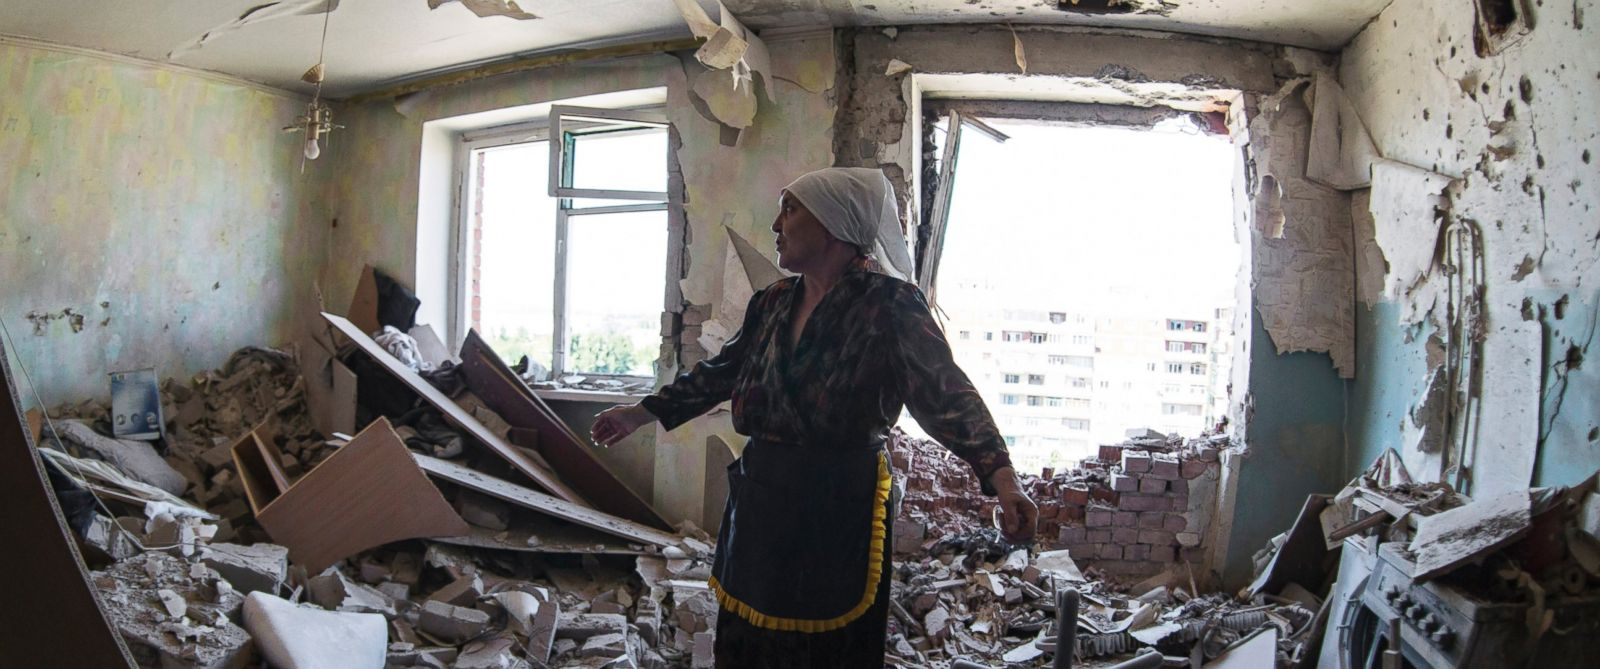 PHOTO: Valentina, who gave only her first name, gestures in a flat of her neighbor who was injured during shelling in the city of Kramatorsk, Donetsk region, eastern Ukraine, Thursday, July 3, 2014.